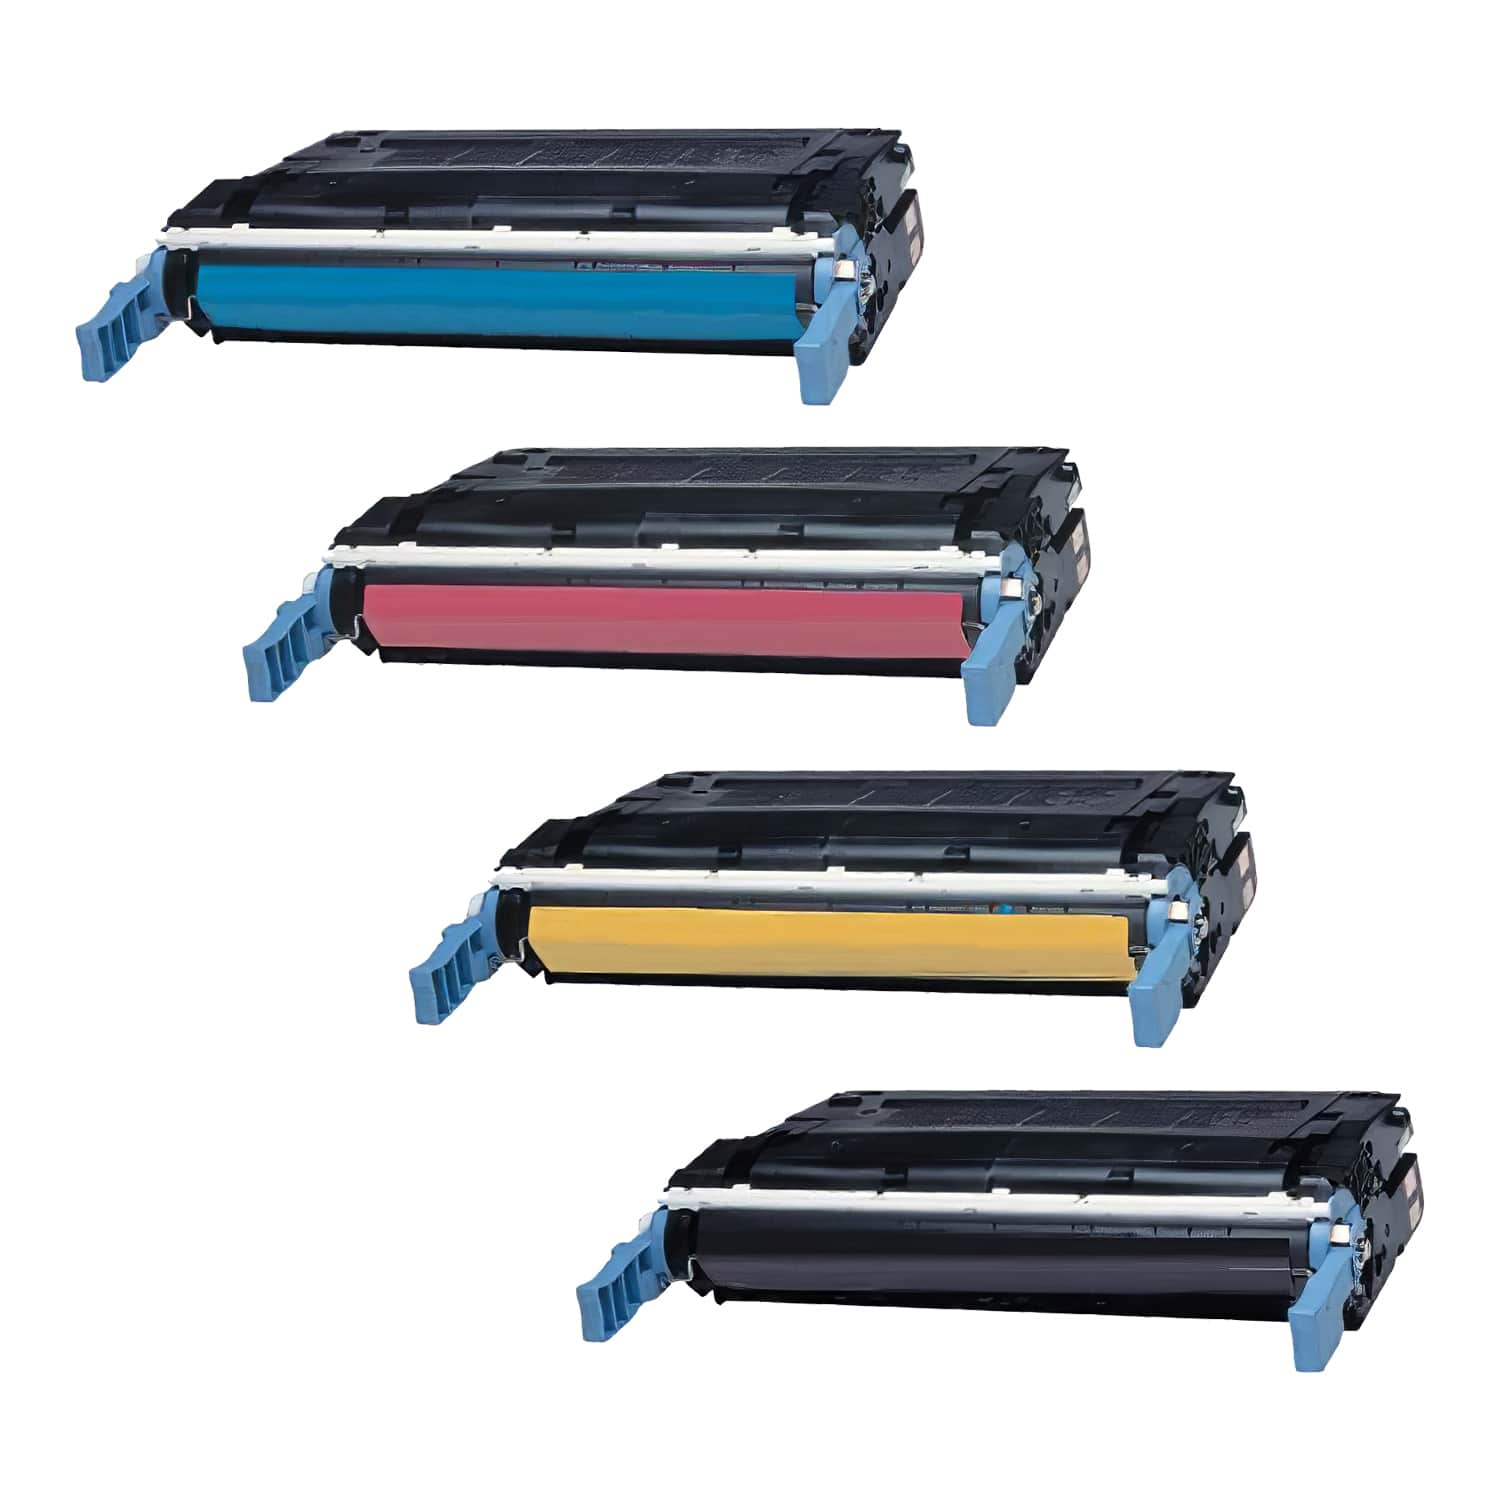 Remanufactured HP Toner Cartridge Bundlpack 644A CMYK Pack - 4 Cartridges